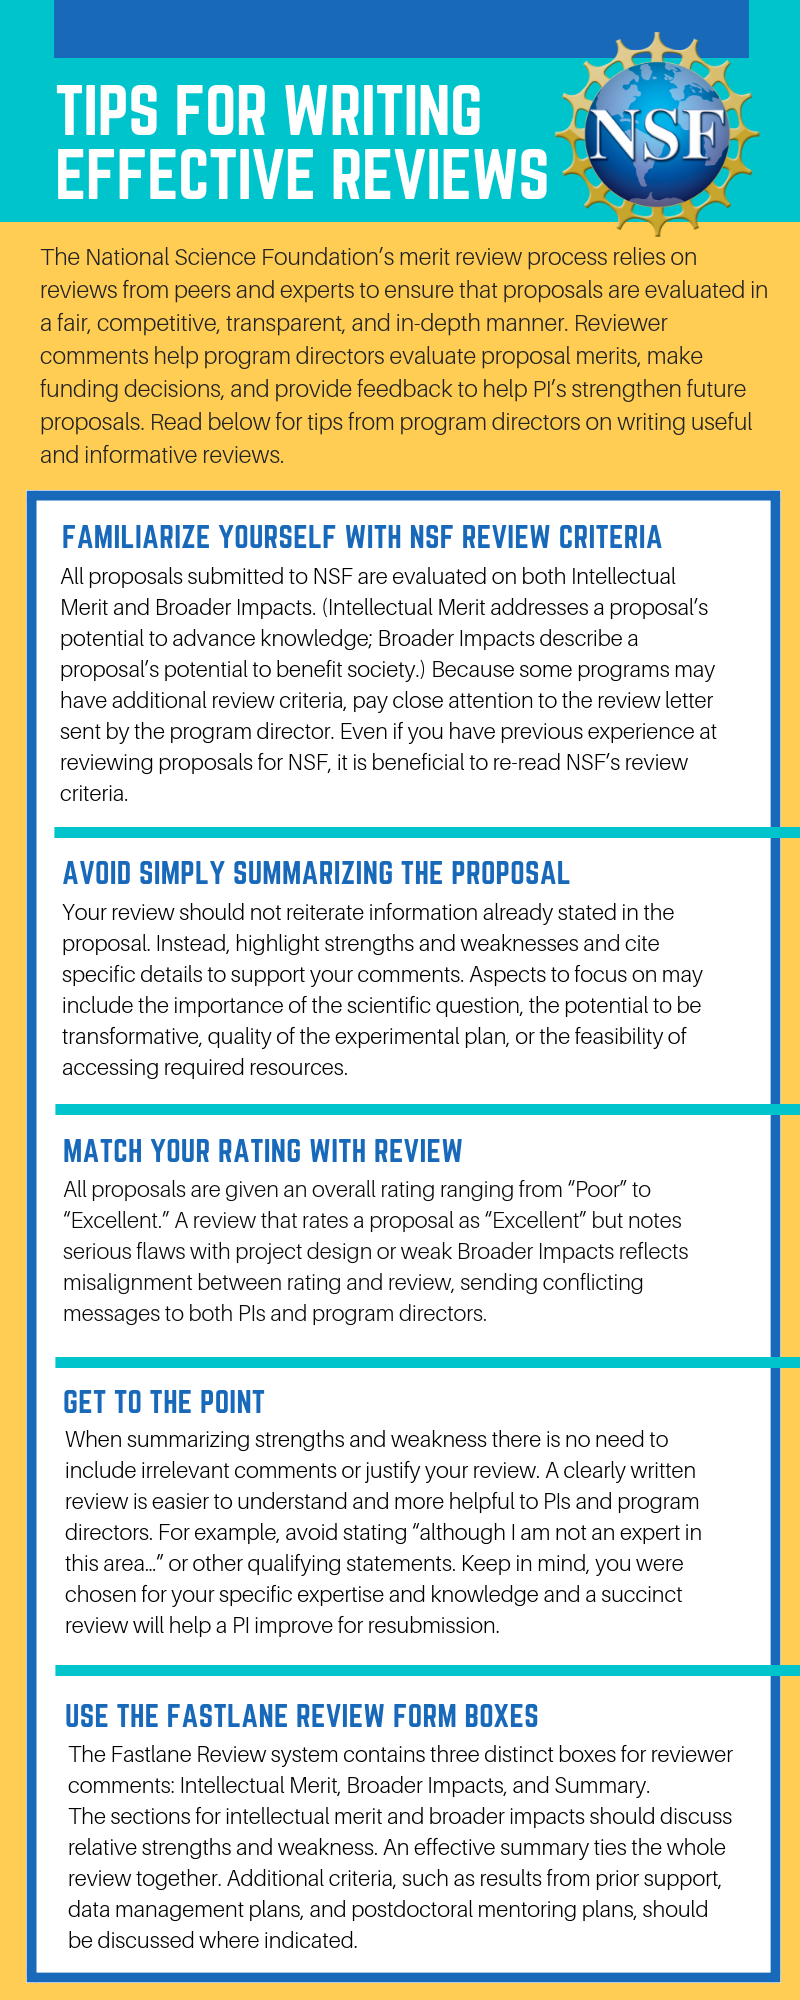 "Tips for Writing Effective Reviews The National Science Foundation's merit review process relies on reviews from peers and experts to ensure that proposals are evaluated in a fair, competitive, transparent, and in-depth manner. Reviewer comments help program directors evaluate proposal merits, make funding decisions, and provide feedback to help PI's strengthen future proposals. Read below for tips from program directors on writing useful and informative reviews. FAMILIARIZE YOURSELF WITH NSF REVIEW CRITERIA All proposals submitted to NSF are evaluated on both Intellectual Merit and Broader Impacts. (Intellectual Merit addresses a proposal's potential to advance knowledge; Broader Impacts describe a proposal's potential to benefit society.) Because some programs may have additional review criteria, pay close attention to the review letter sent by the program director. Even if you have previous experience at reviewing proposals for NSF, it is beneficial to re-read NSF's review criteria. AVOID SIMPLY SUMMARIZING THE PROPOSAL Your review should not reiterate information already stated in the proposal. Instead, highlight strengths and weaknesses and cite specific details to support your comments. Aspects to focus on may include the importance of the scientific question, the potential to be transformative, quality of the experimental plan, or the feasibility of accessing required resources. MATCH YOUR RATING WITH REVIEW All proposals are given an overall rating ranging from ""Poor"" to ""Excellent."" A review that rates a proposal as ""Excellent"" but notes serious flaws with project design or weak Broader Impacts reflects misalignment between rating and review, sending conflicting messages to both PIs and program directors.  GET TO THE POINT  When summarizing strengths and weakness there is no need to include irrelevant comments or justify your review. A clearly written review is easier to understand and more helpful to PIs and program directors. For example, avoid stating ""although I am not an expert in this area…"" or other qualifying statements. Keep in mind, you were chosen for your specific expertise and knowledge and a succinct review will help a PI improve for resubmission.  USE THE FASTLANE REVIEW FORM BOXES The Fastlane Review system contains three distinct boxes for reviewer comments: Intellectual Merit, Broader Impacts, and Summary. The sections for intellectual merit and broader impacts should discuss relative strengths and weakness. An effective summary ties the whole review together. Additional criteria, such as results from prior support, data management plans, and postdoctoral mentoring plans, should be discussed where indicated."